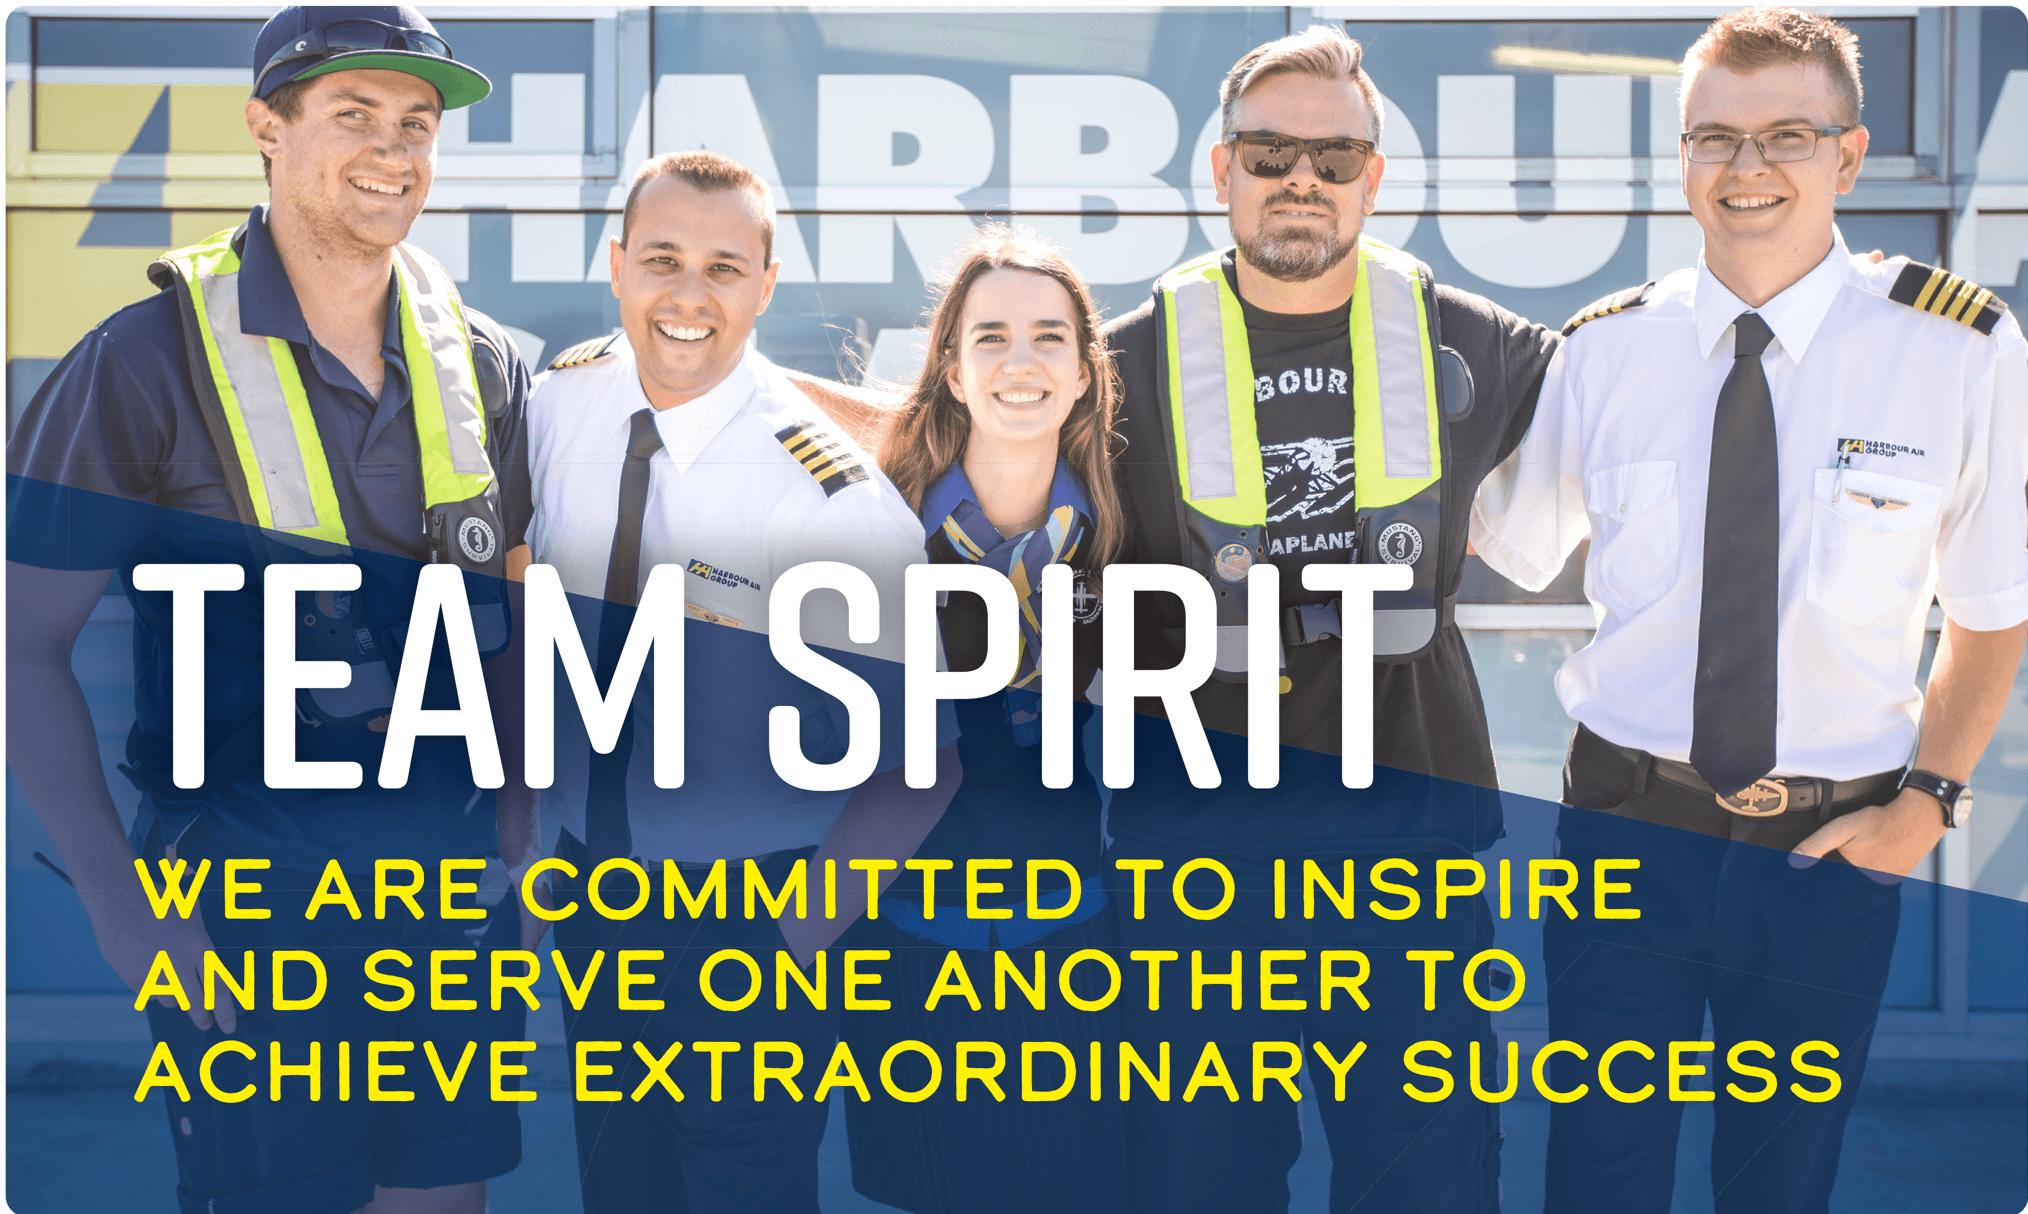 Team Spirit: We are committed to inspire and serve one another to achieve extraordinary success